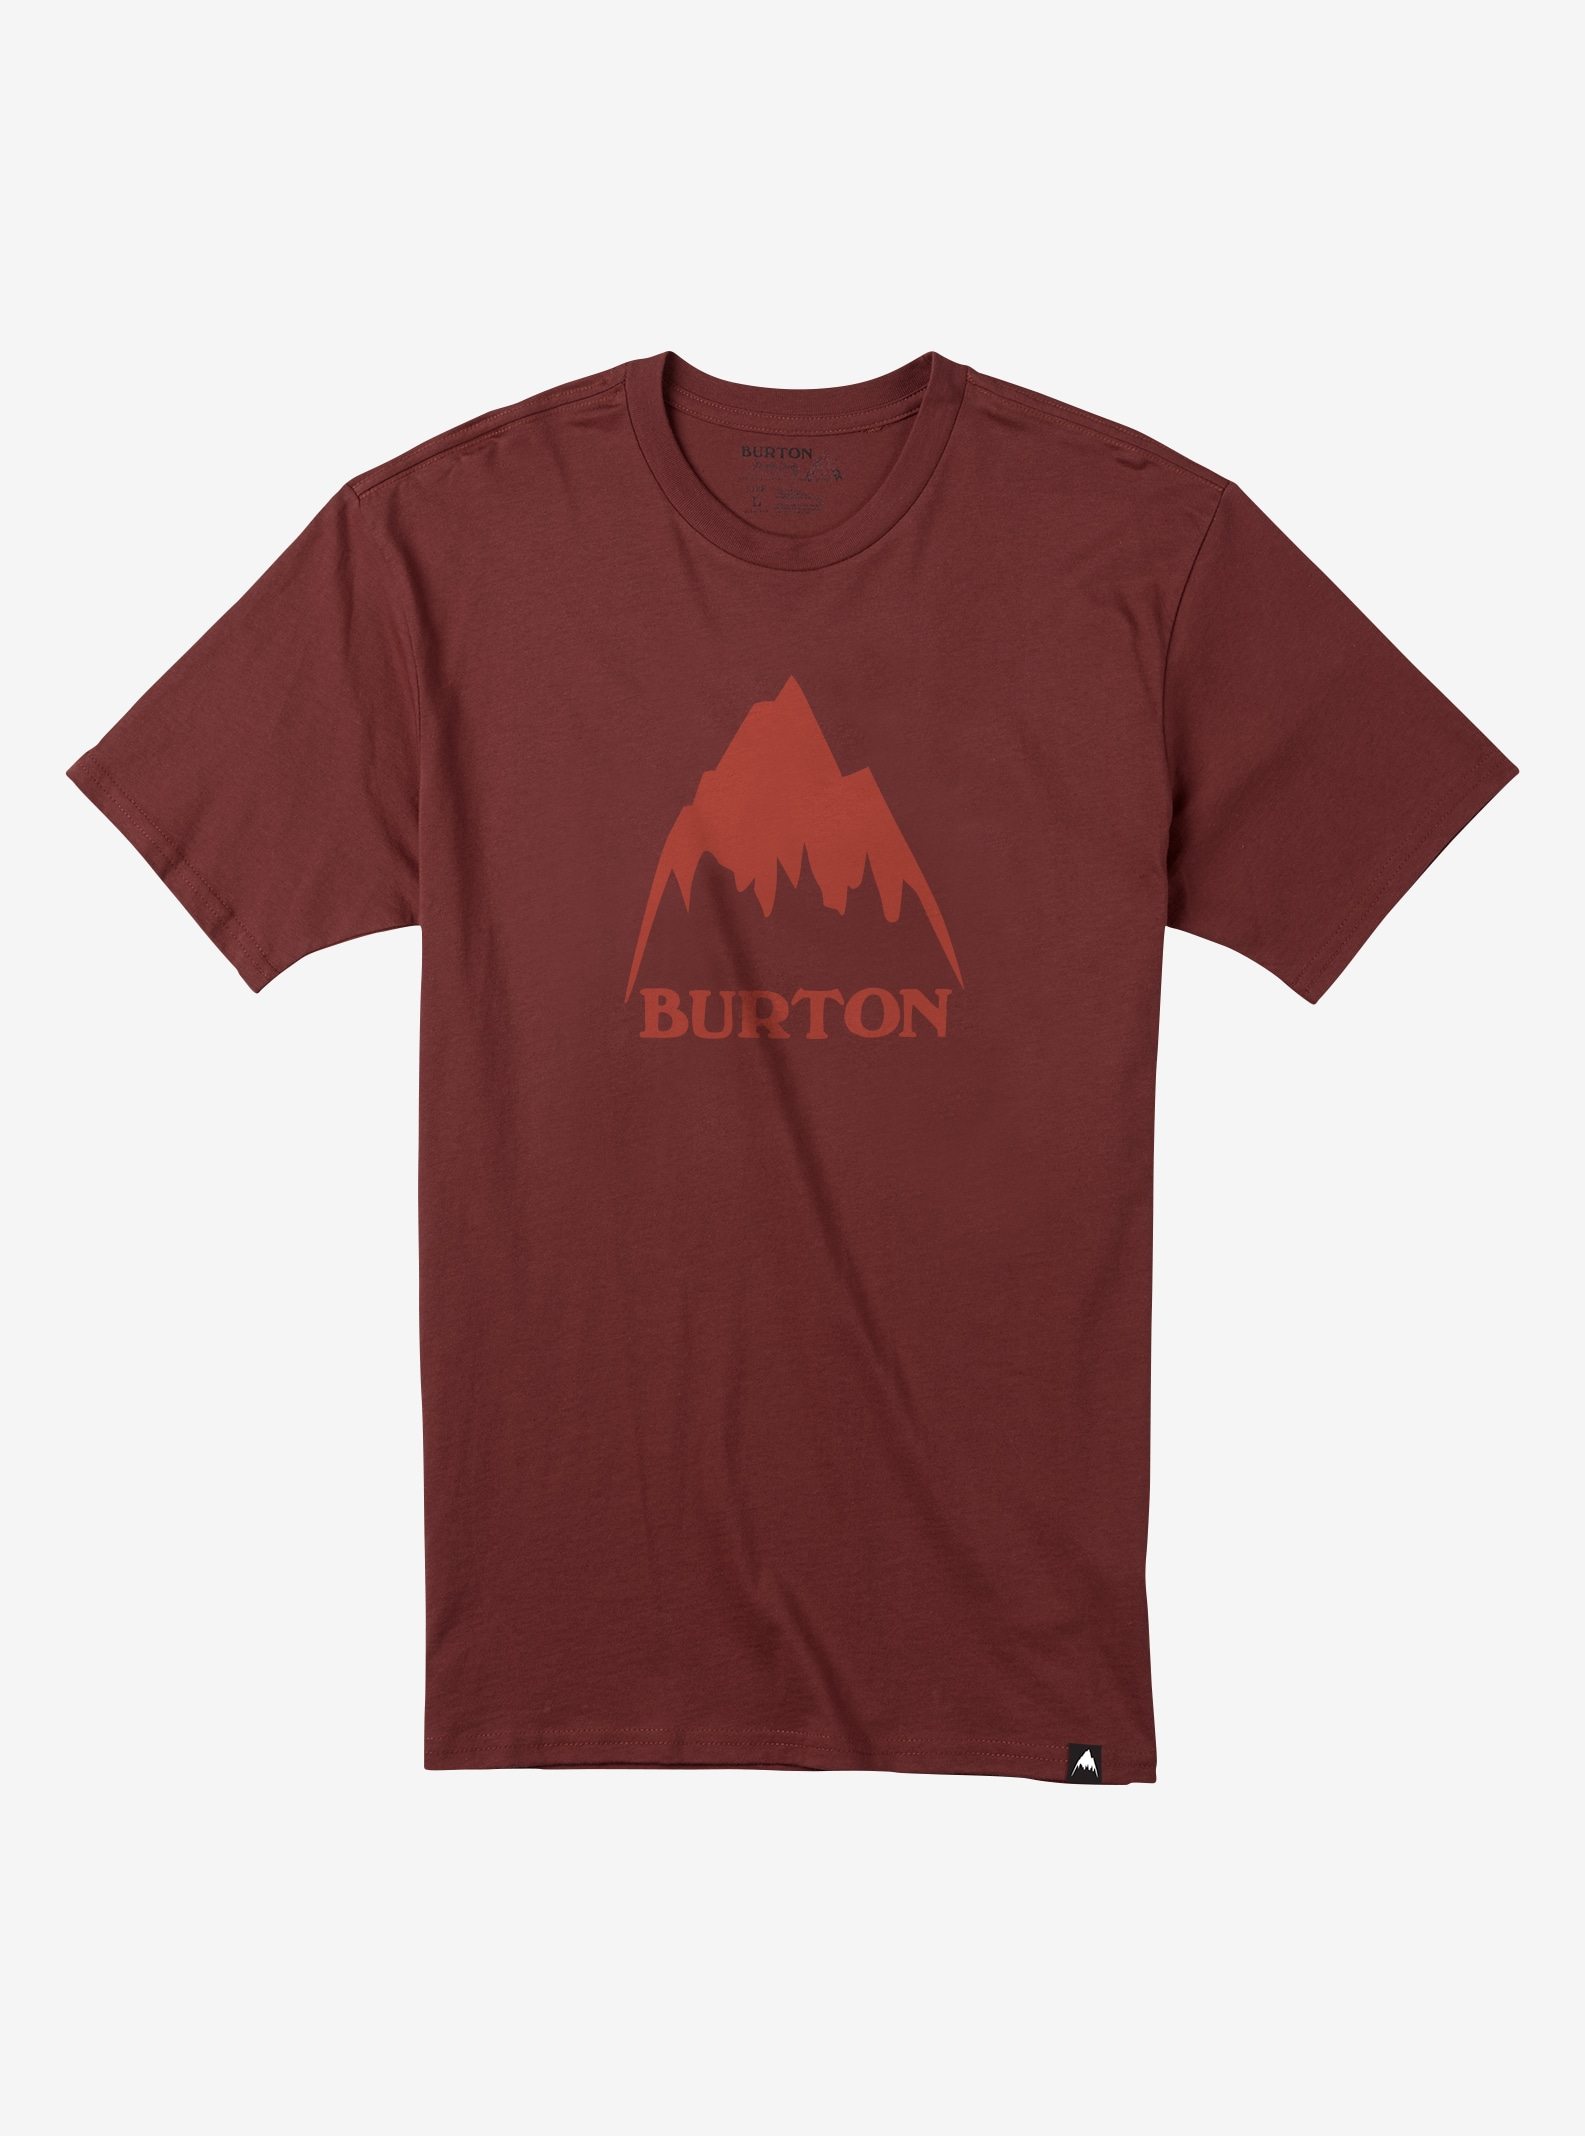 Men's Burton Classic Mountain High Short Sleeve T Shirt shown in Fired Brick